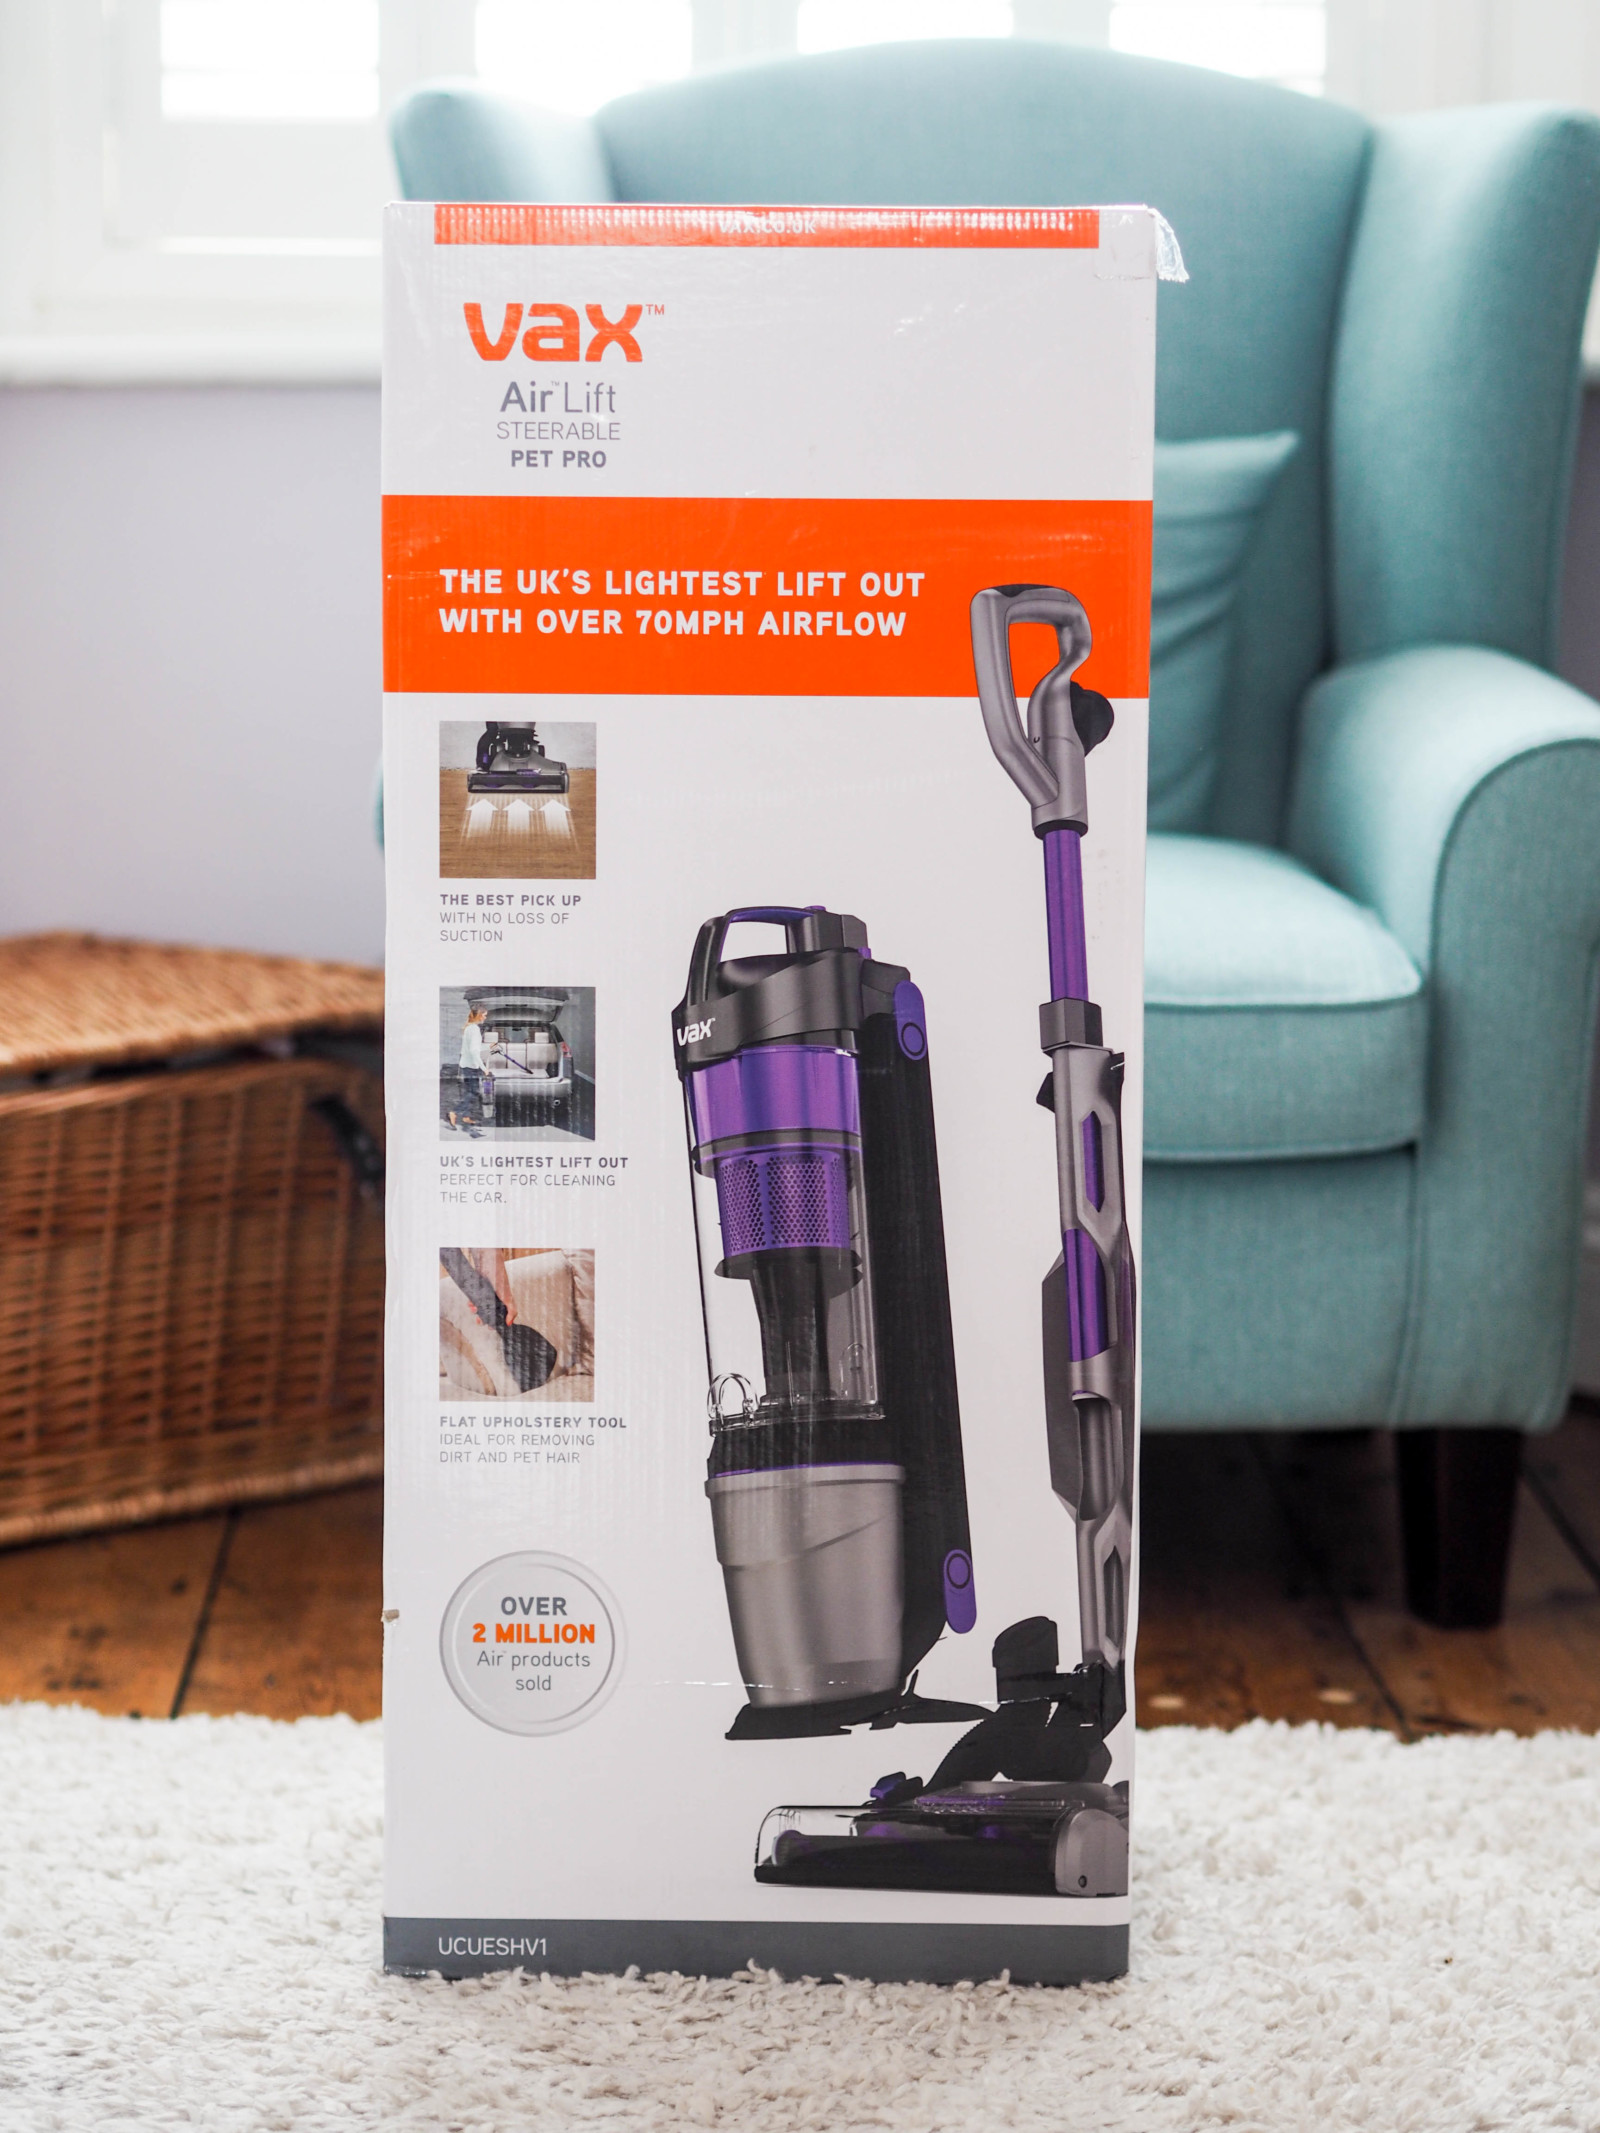 Review: Vax Air Lift Steerable Pet Pro Vacuum Cleaner